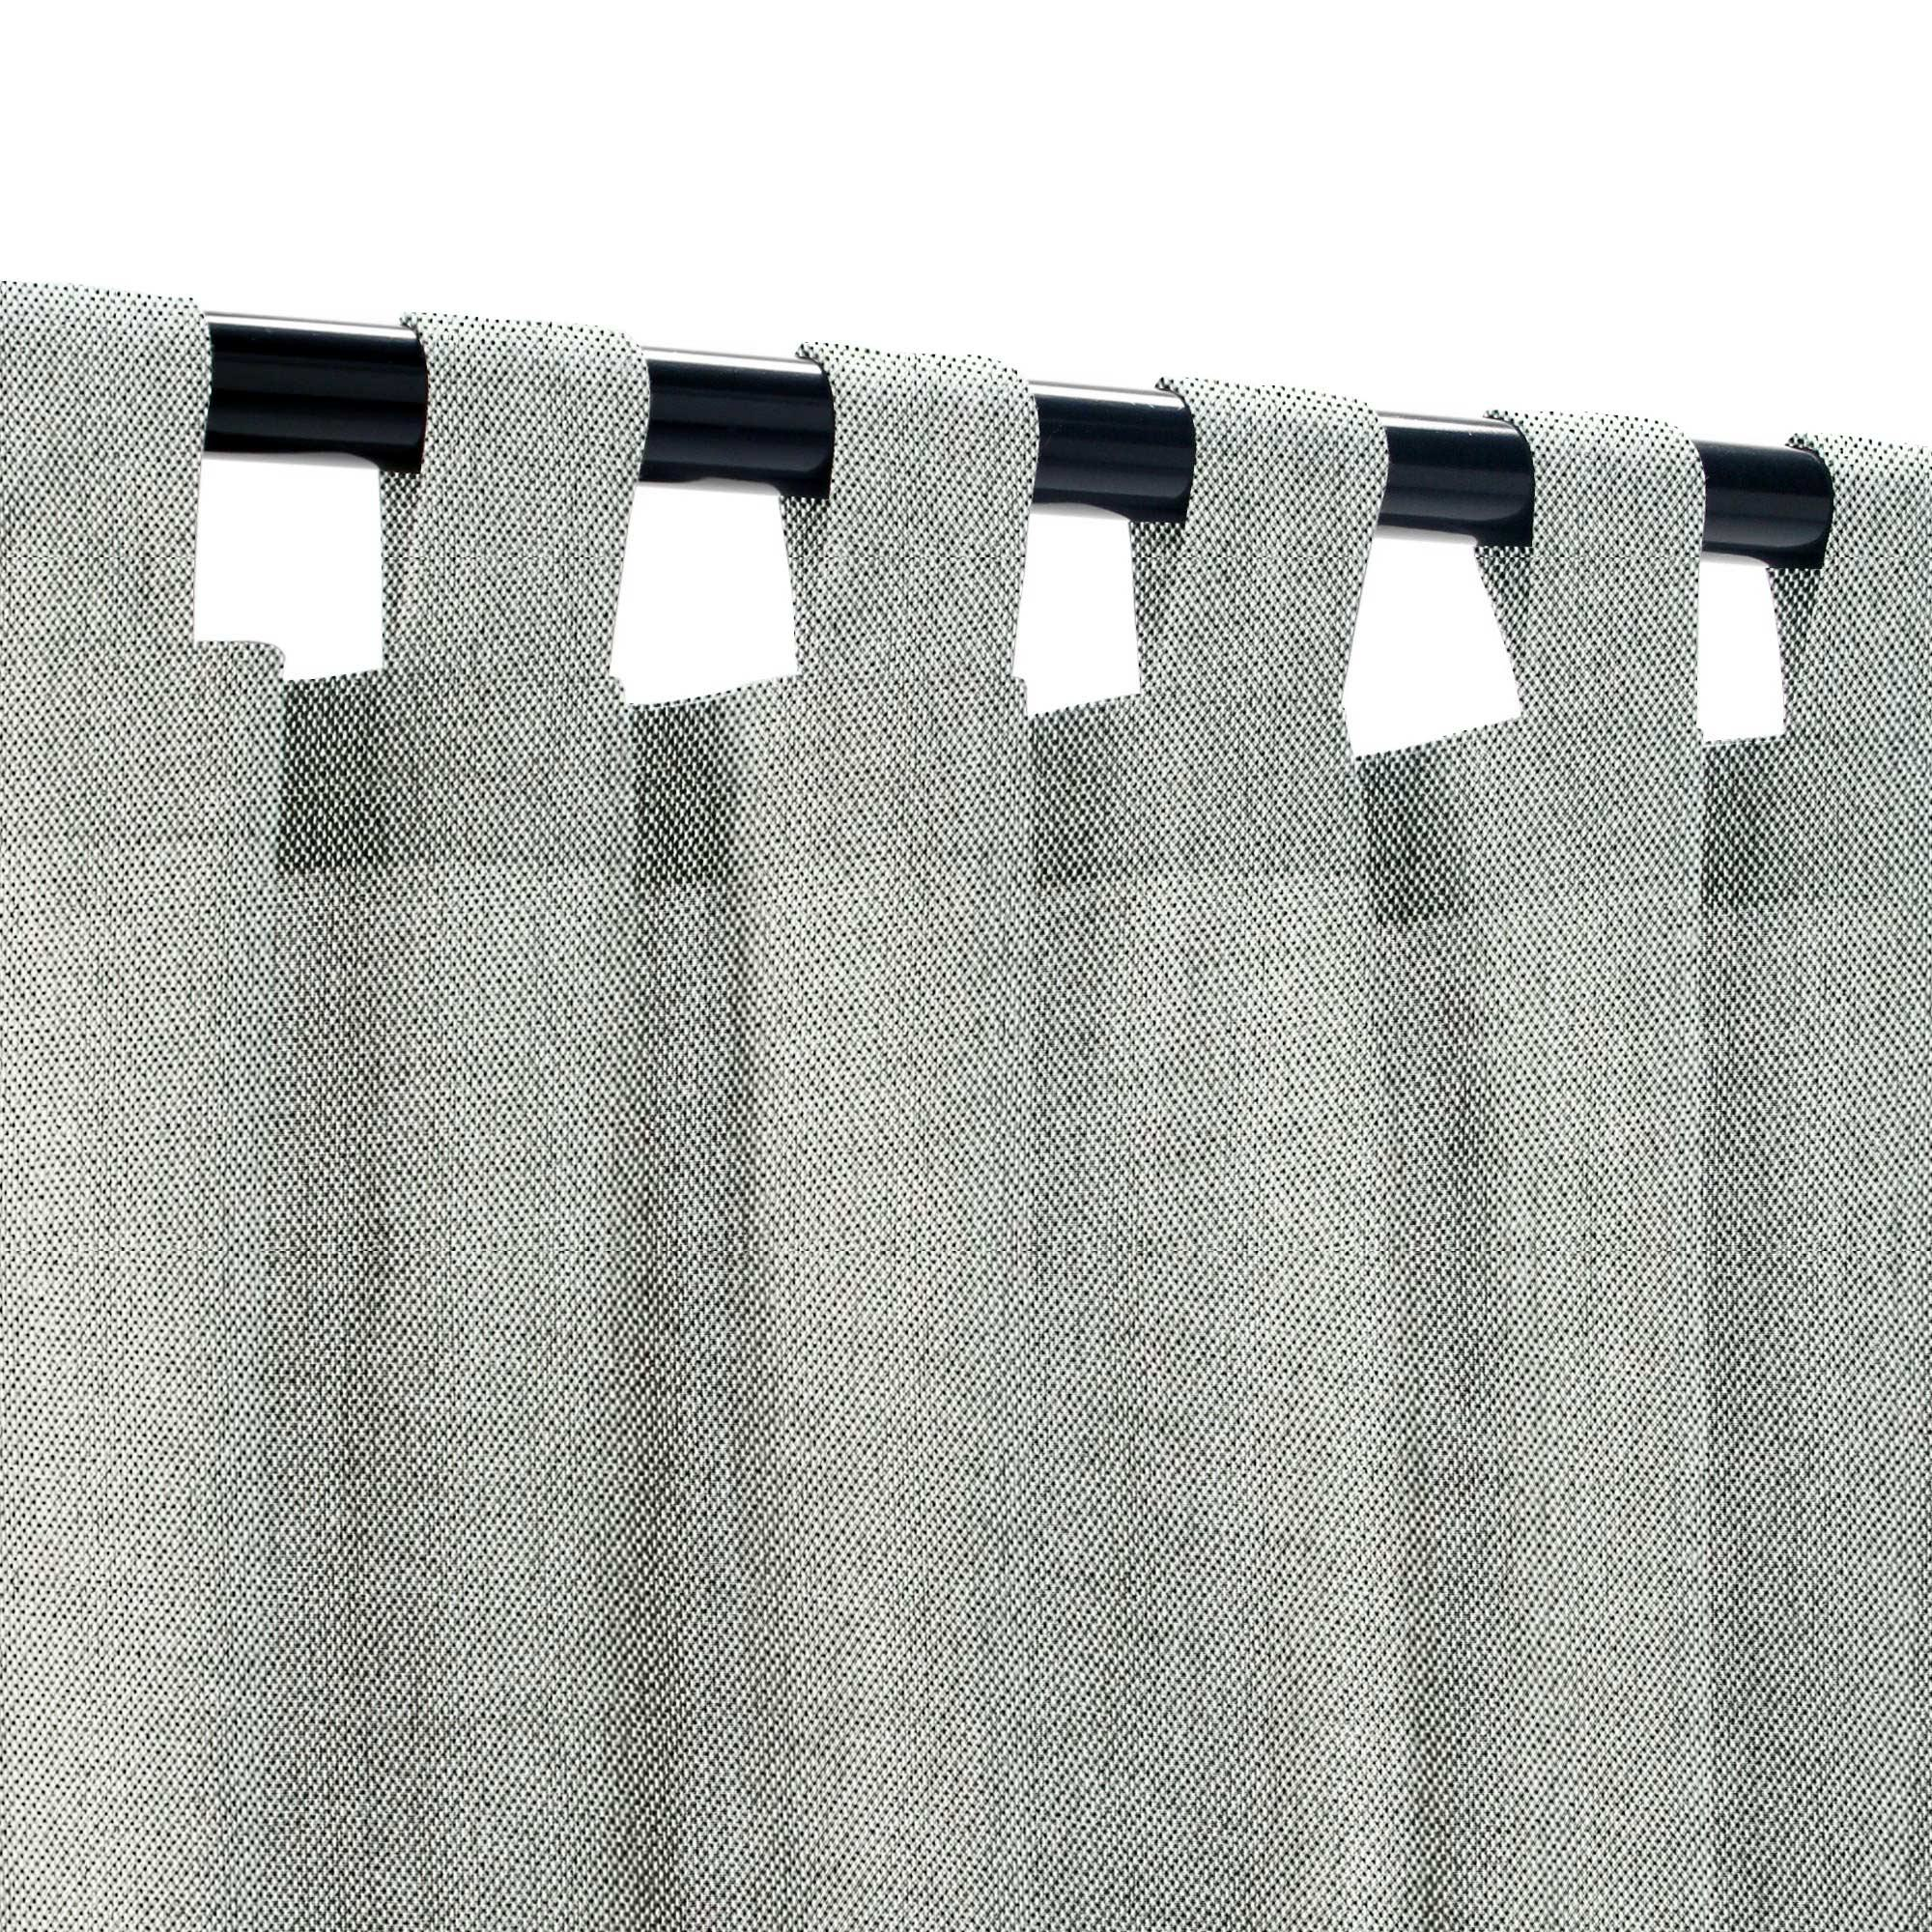 Tempotest Siena Stone Extrawide Outdoor Curtain Tempotest Outdoor Curtains